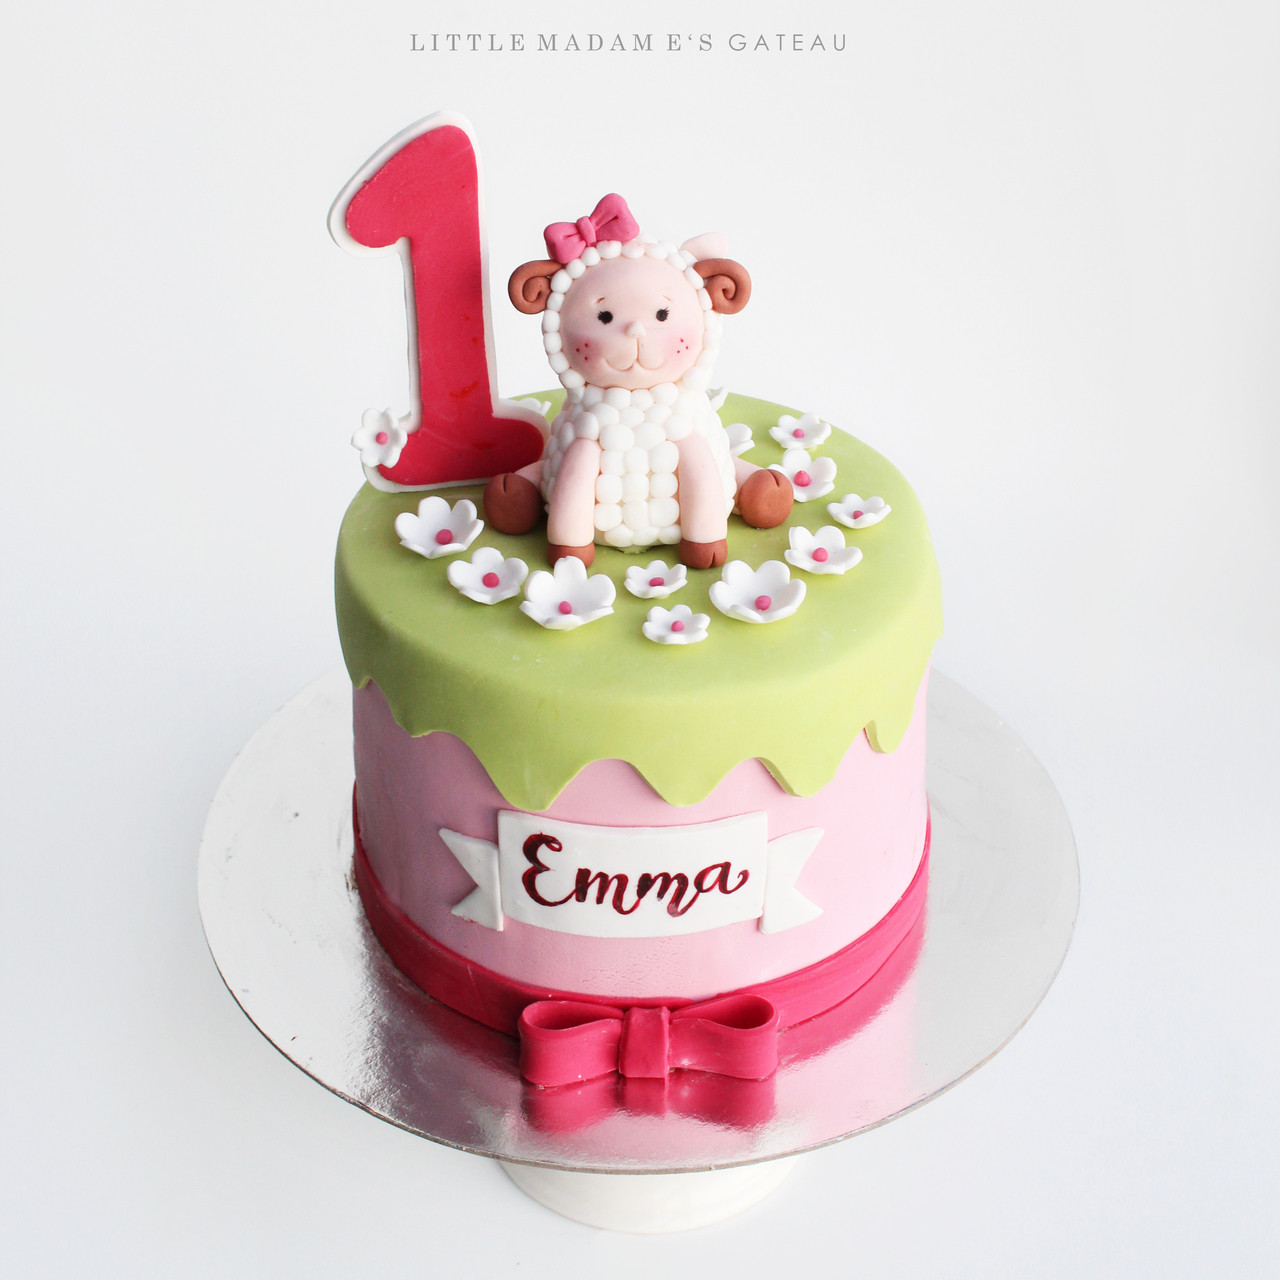 Sheep Cake Design2 Kids Birthday 54697148215295012801280c2